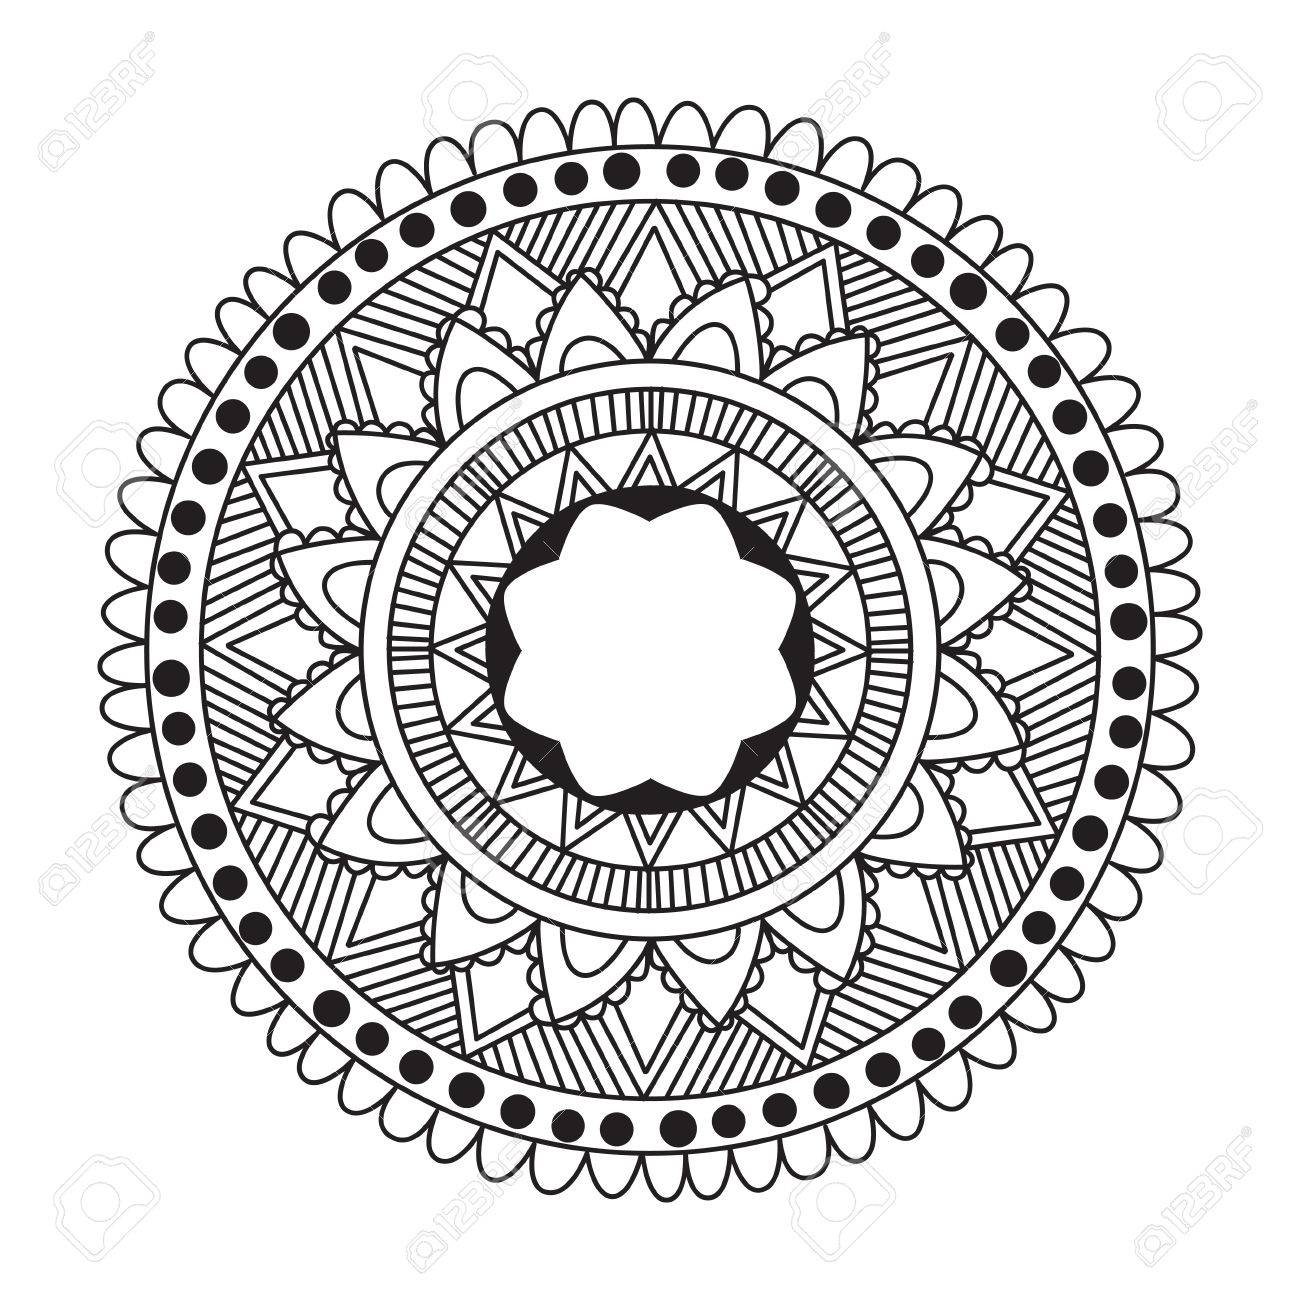 A Zentangle Mandala For Coloring Book And Adults Made By Trace From Personal Hand Drawn